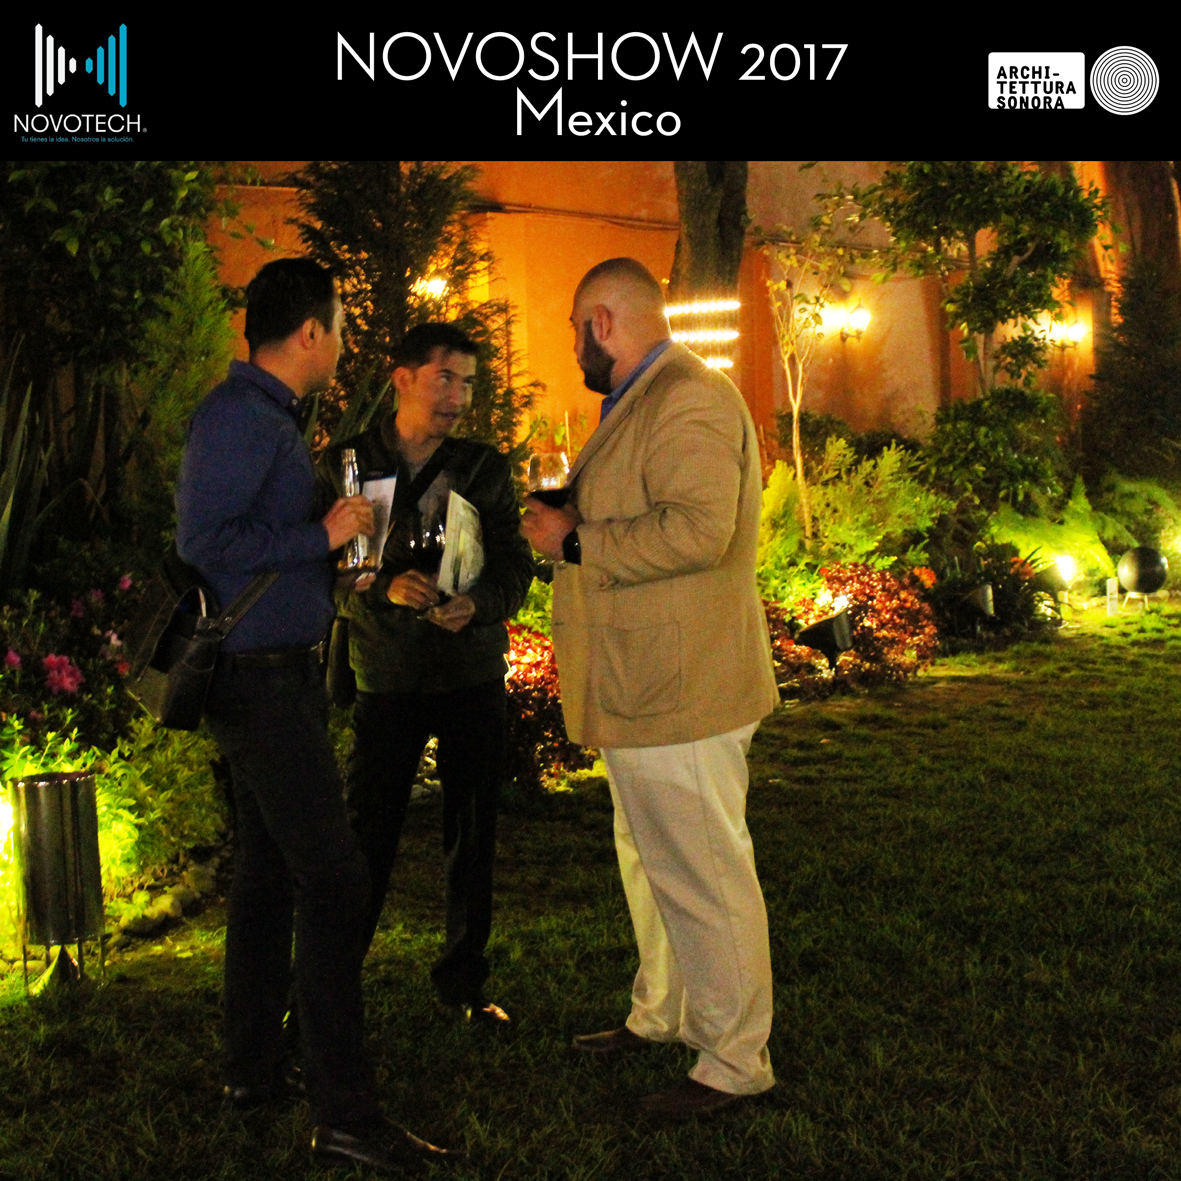 We are very grateful to our friends from Novotech for their amazing event Novoshow 2017, where they introduced all the best innovations and trends in the AV world within a magnificent modernist architecture setting... Architettura Sonora included of course.  Muchas gracias! #Novoshow #Mexico #ArchitetturaSonora